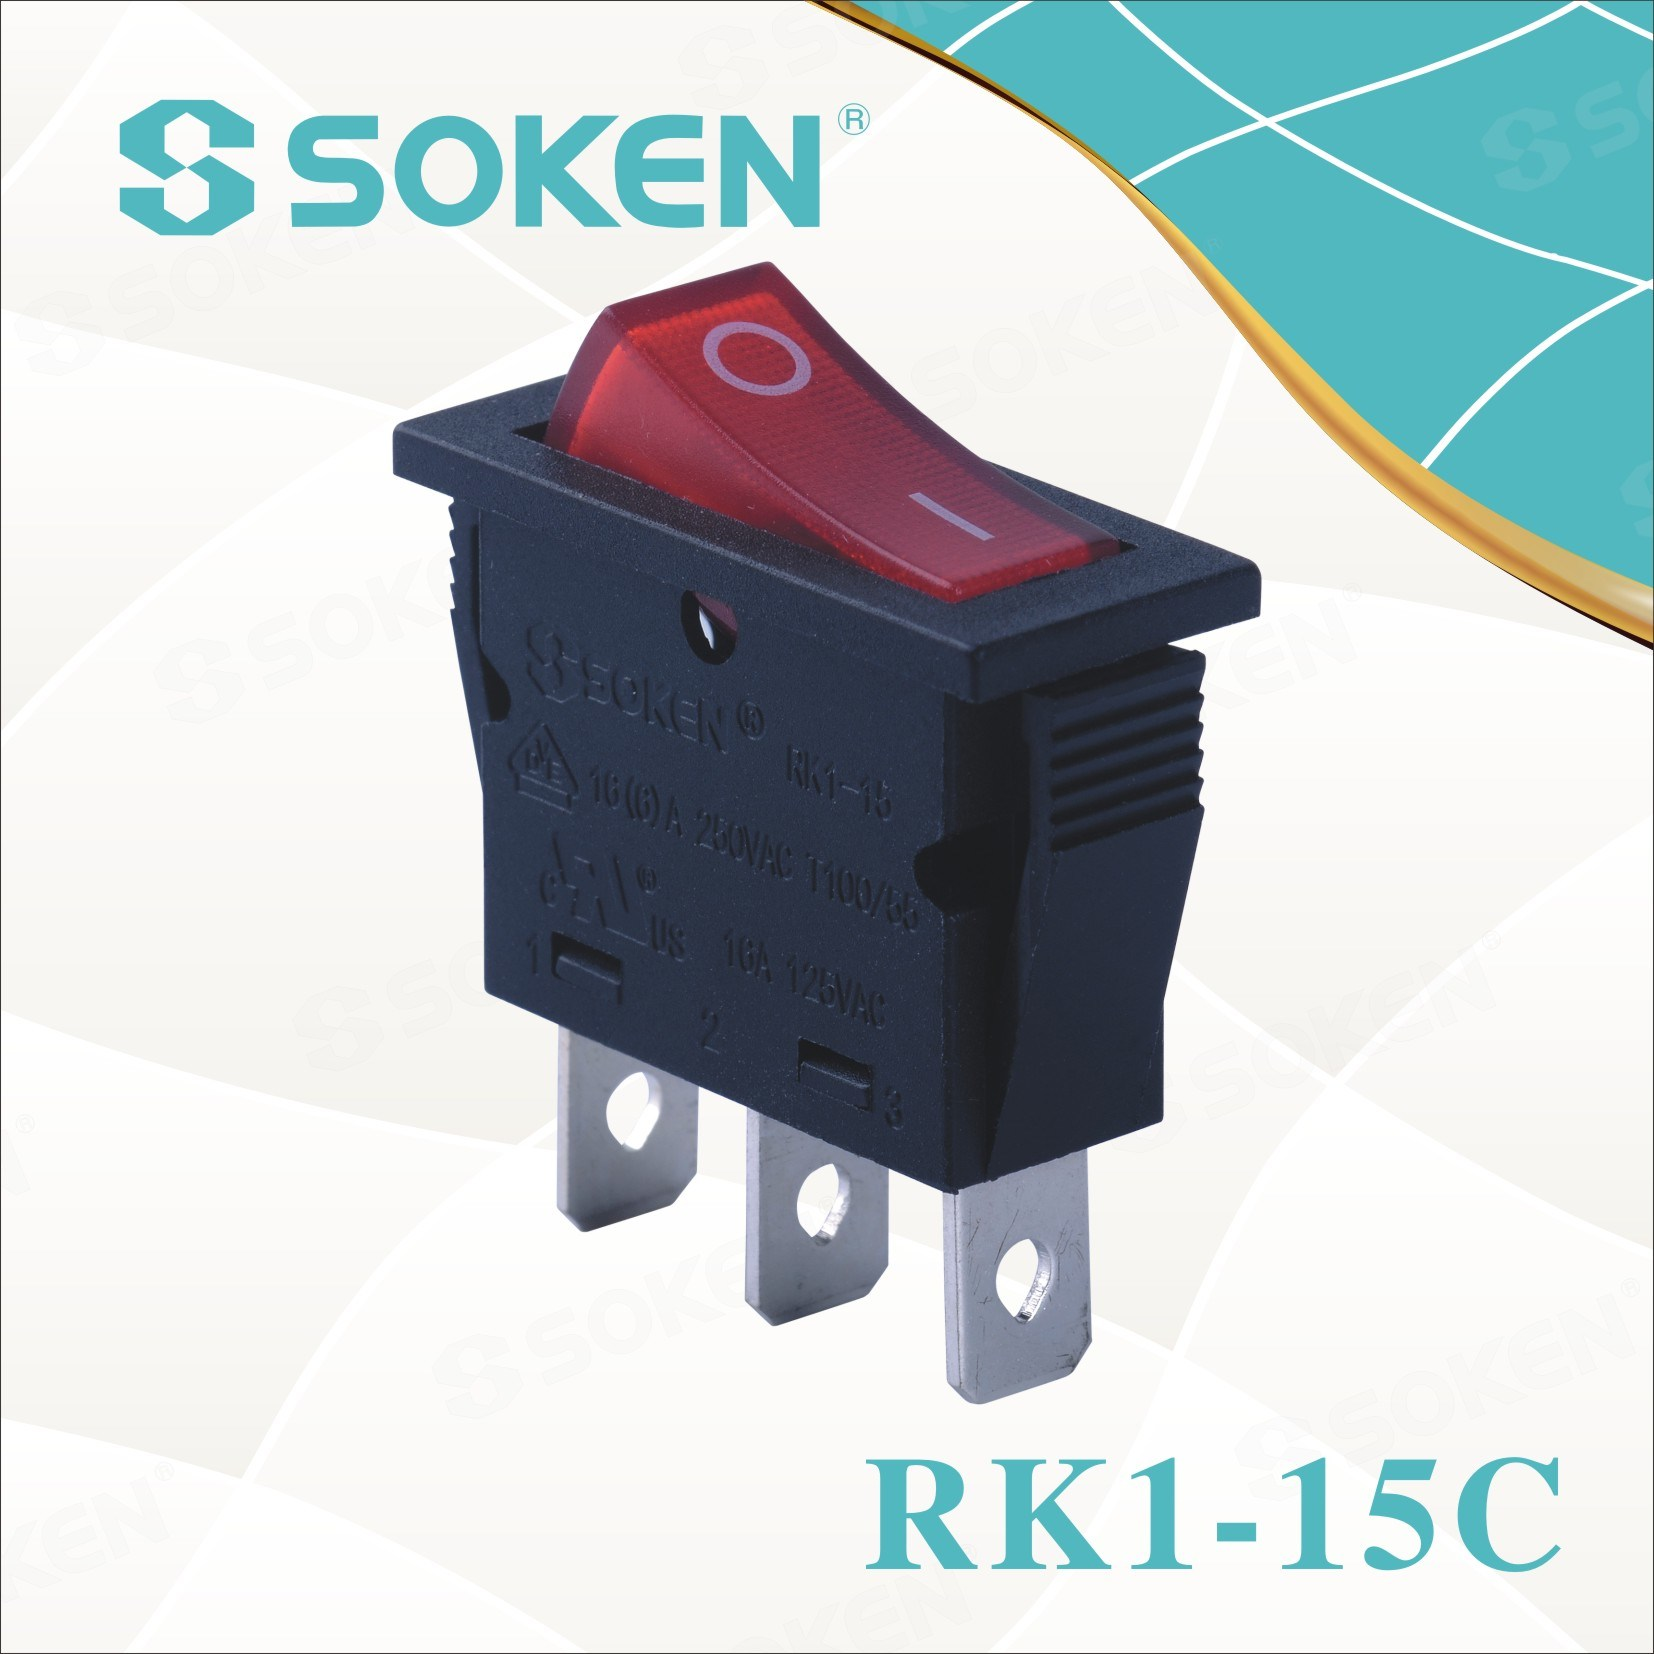 Soken Rk1-15c Voda Dokaz Rocker Switch